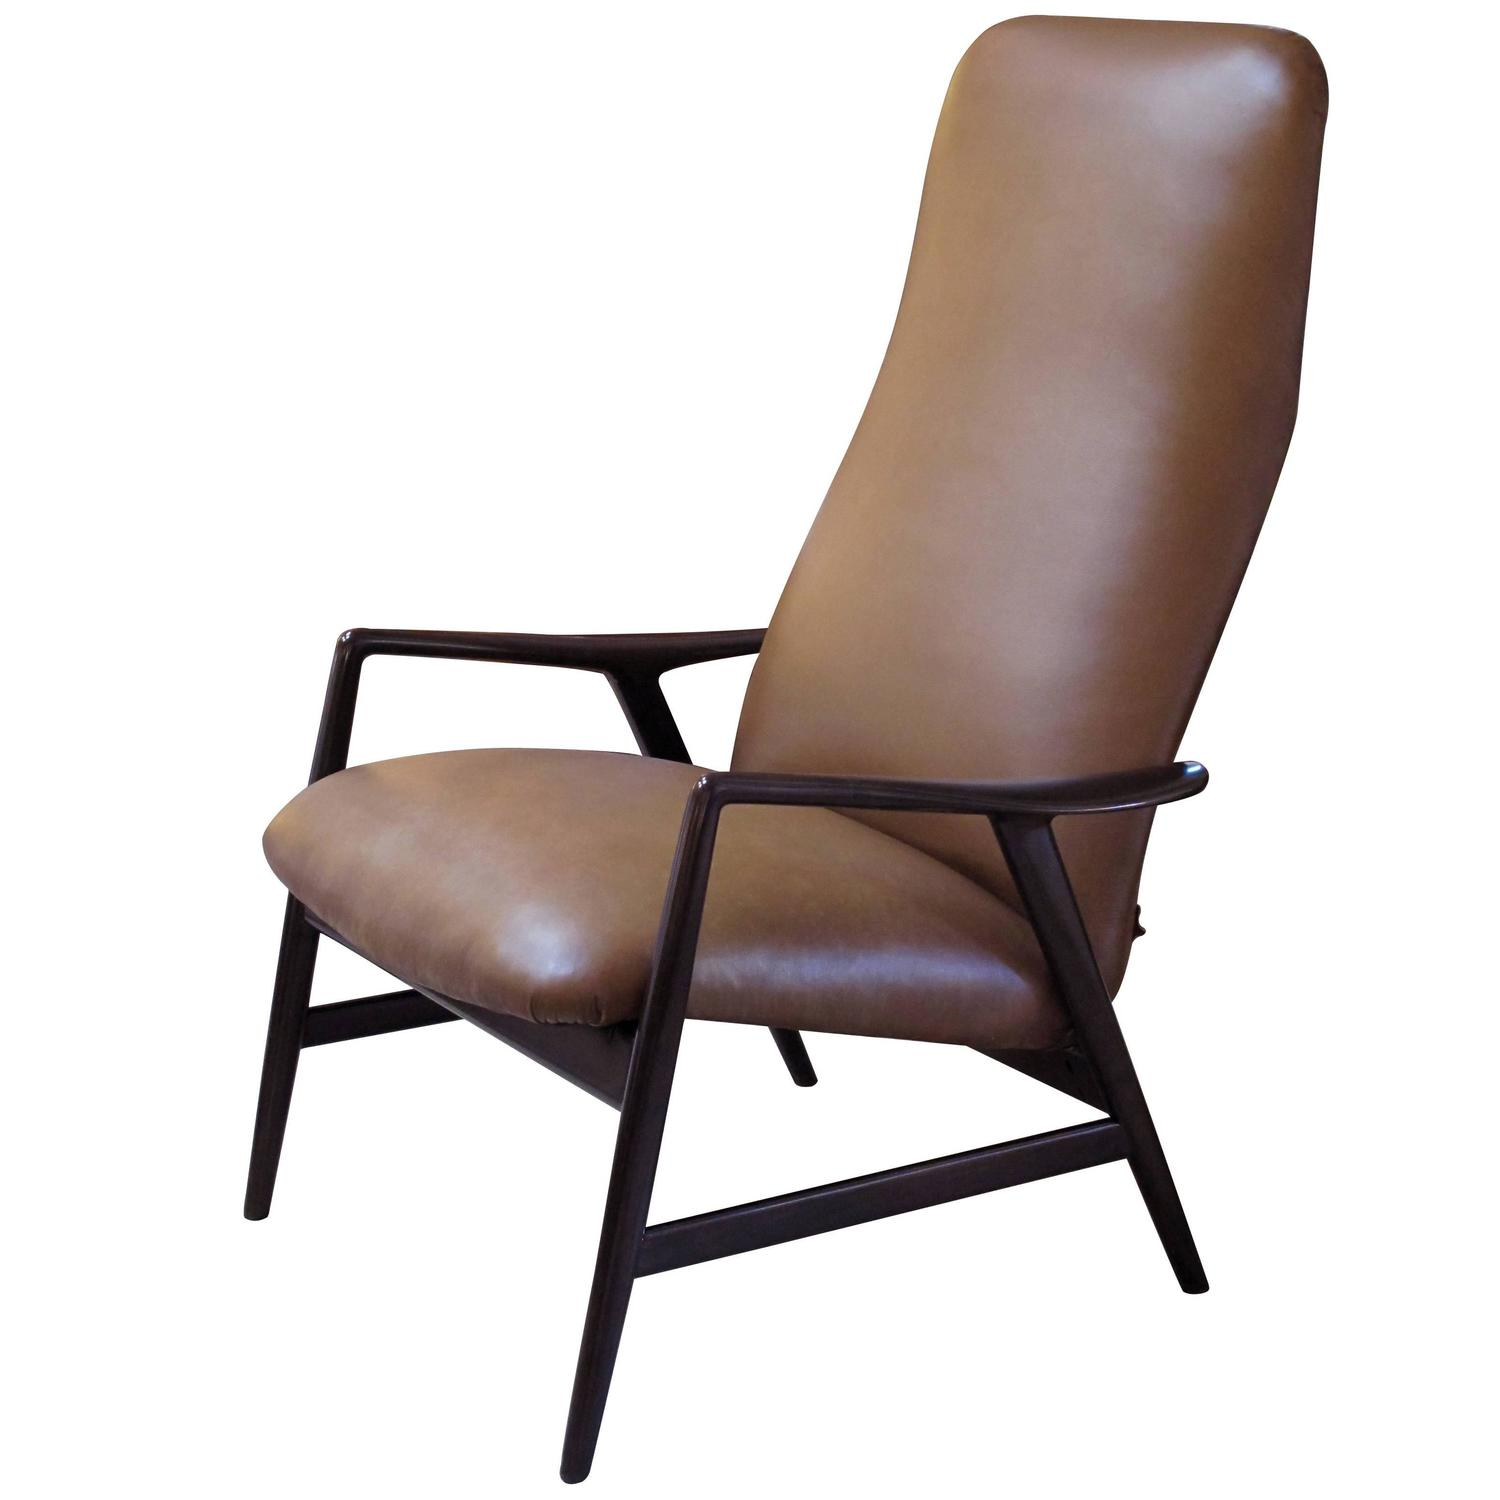 Stylish Danish Modern Alf Svensson for Fritz Hansen Two Position